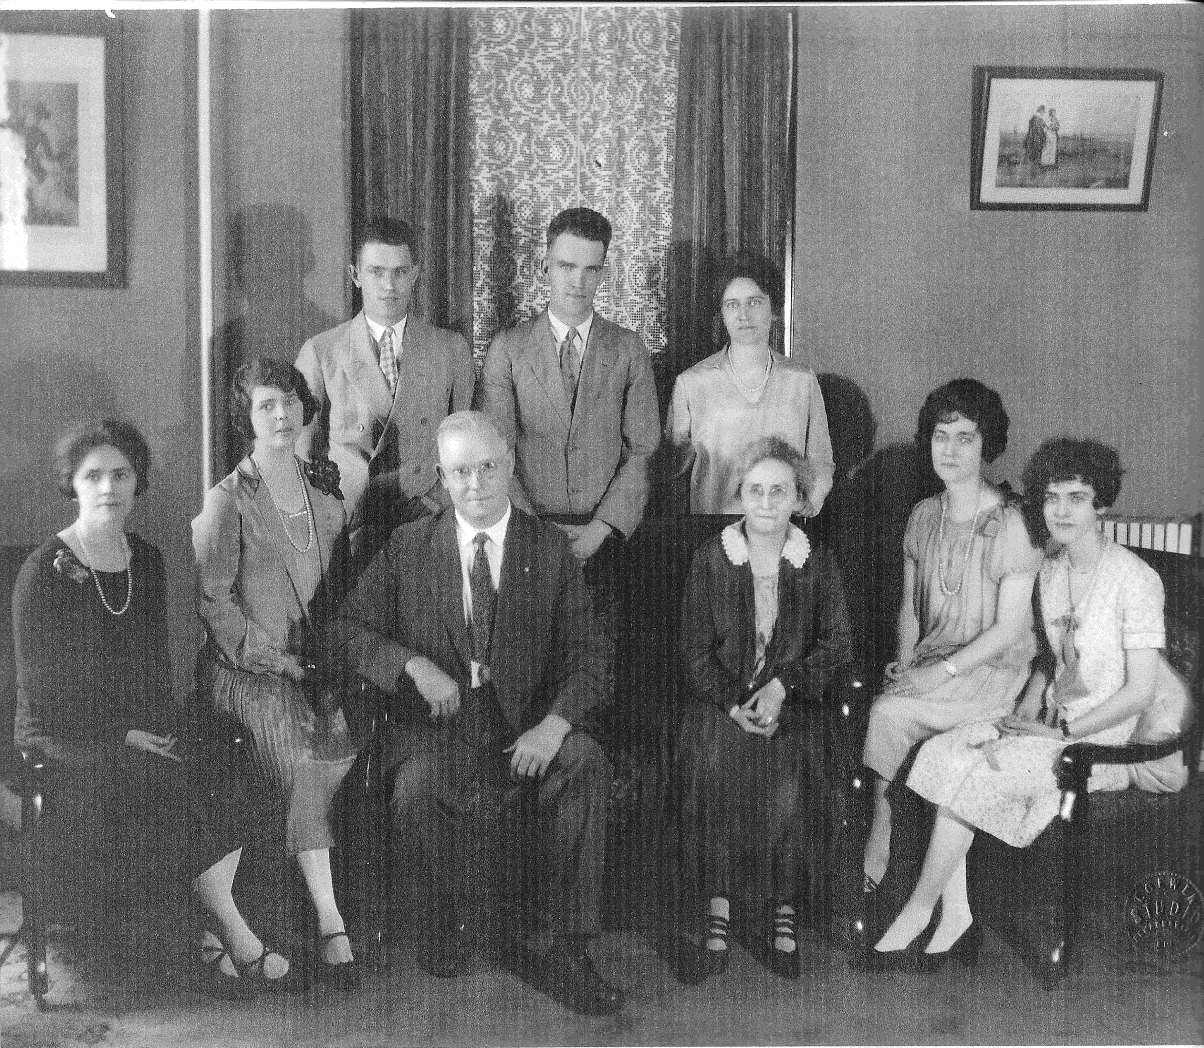 In this undated portrait the members of the Shaw family are: (from left, front) row) Laura Shaw Crossman, Irene Shaw Miller, William Shaw, Elizabeth Reisel Shaw, Mildred Shaw Briggs, Ruth Shaw Smith; (back row) Evan Shaw, Kenneth Shaw, Edith Shaw McKee. (Courtesy of Elizabeth Shaw Stolte)